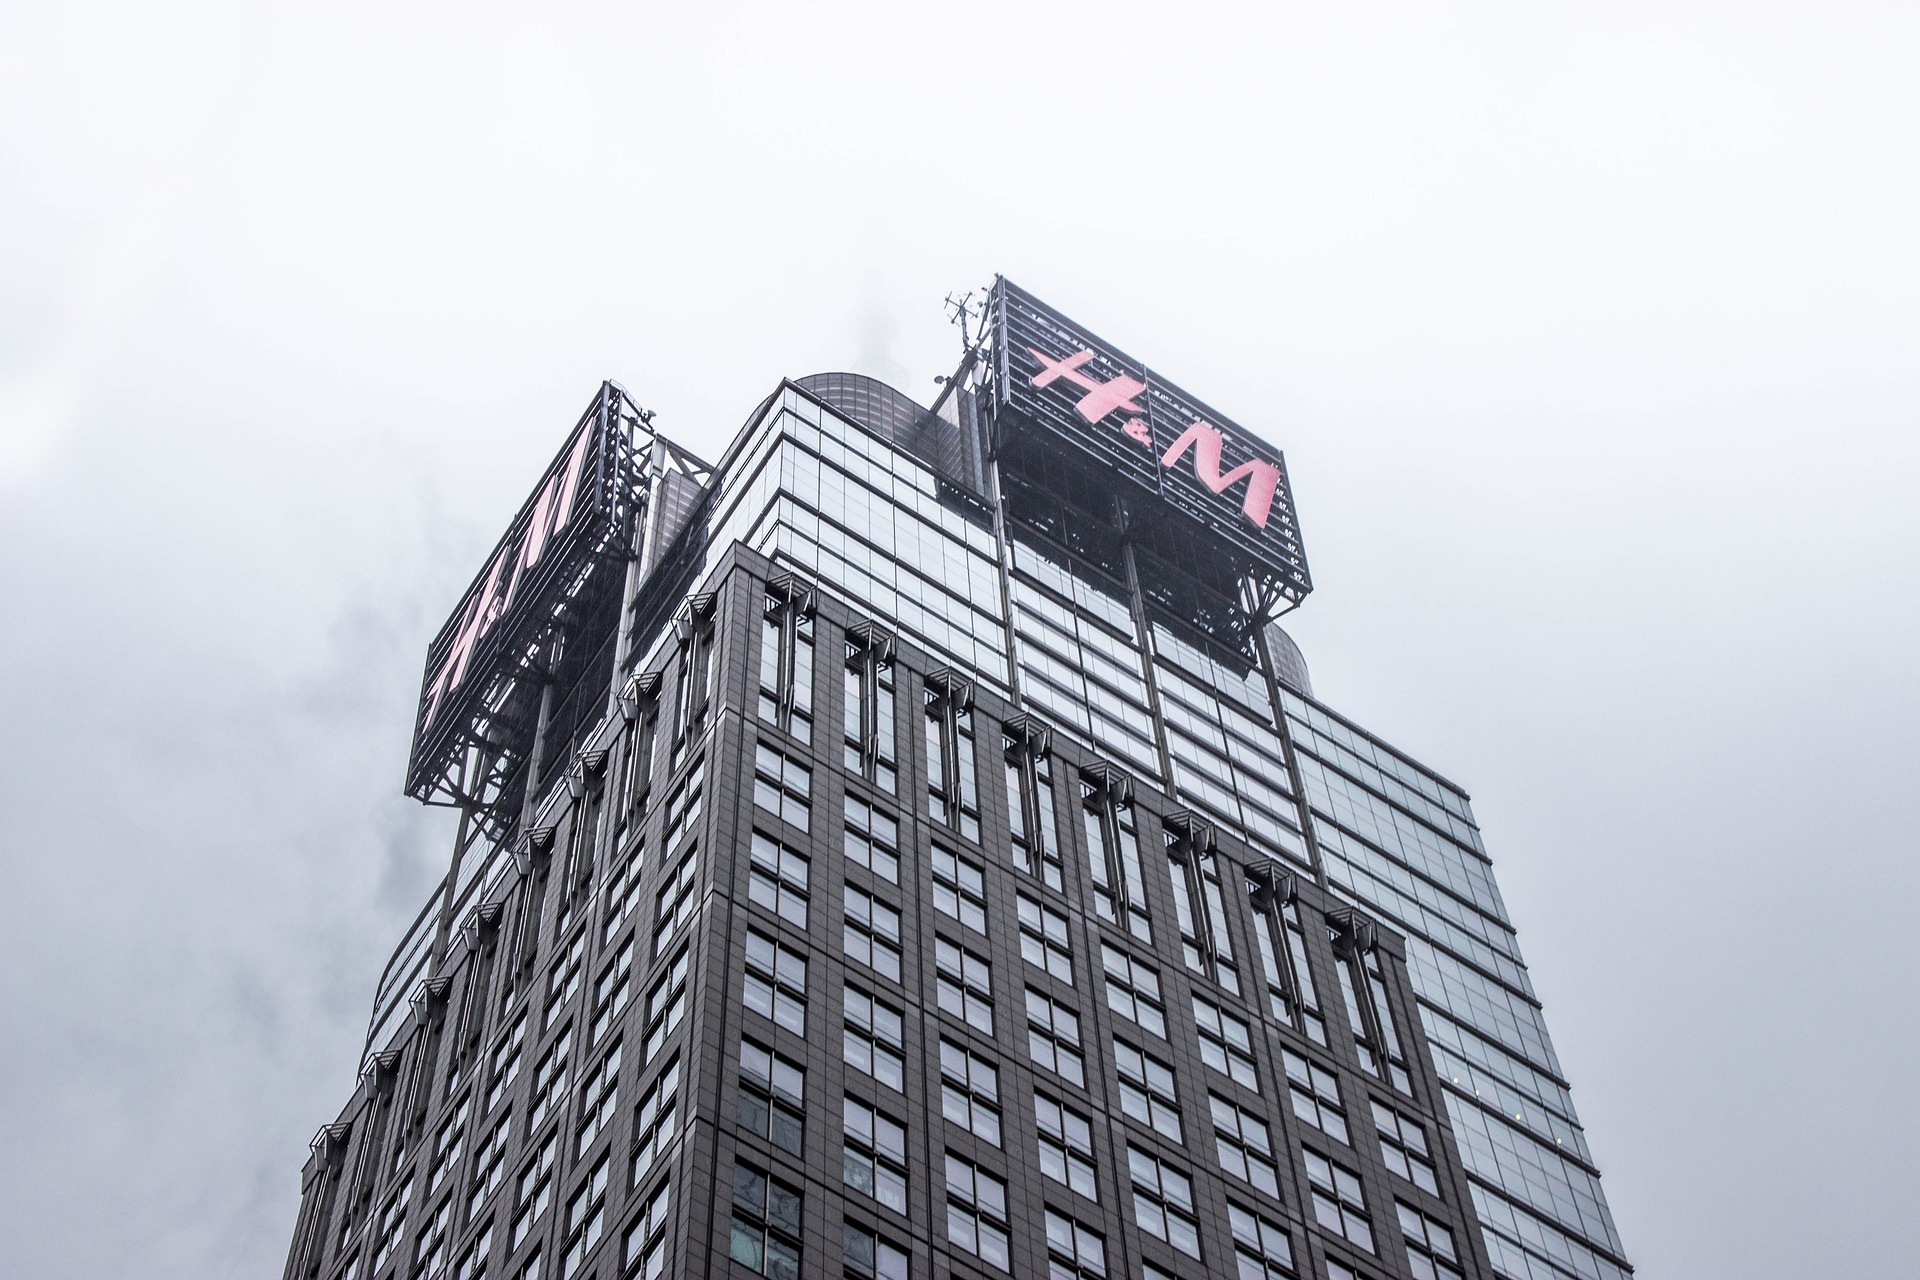 H&M tower